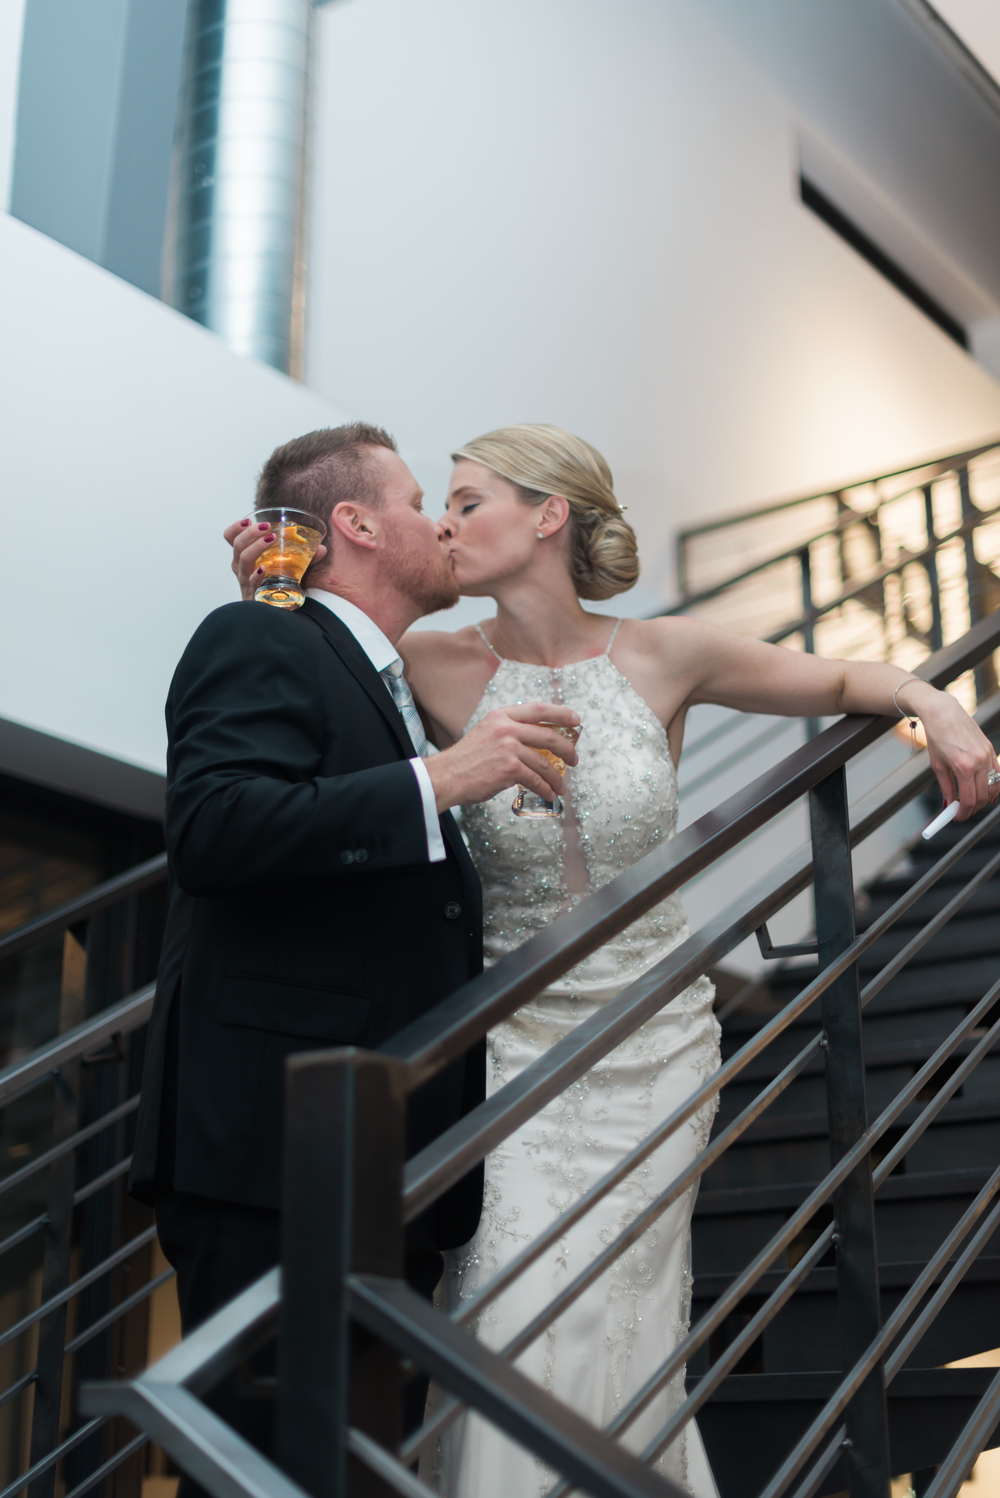 Johnson + Lay Wedding-devorahroldanphotography Web-24.jpg